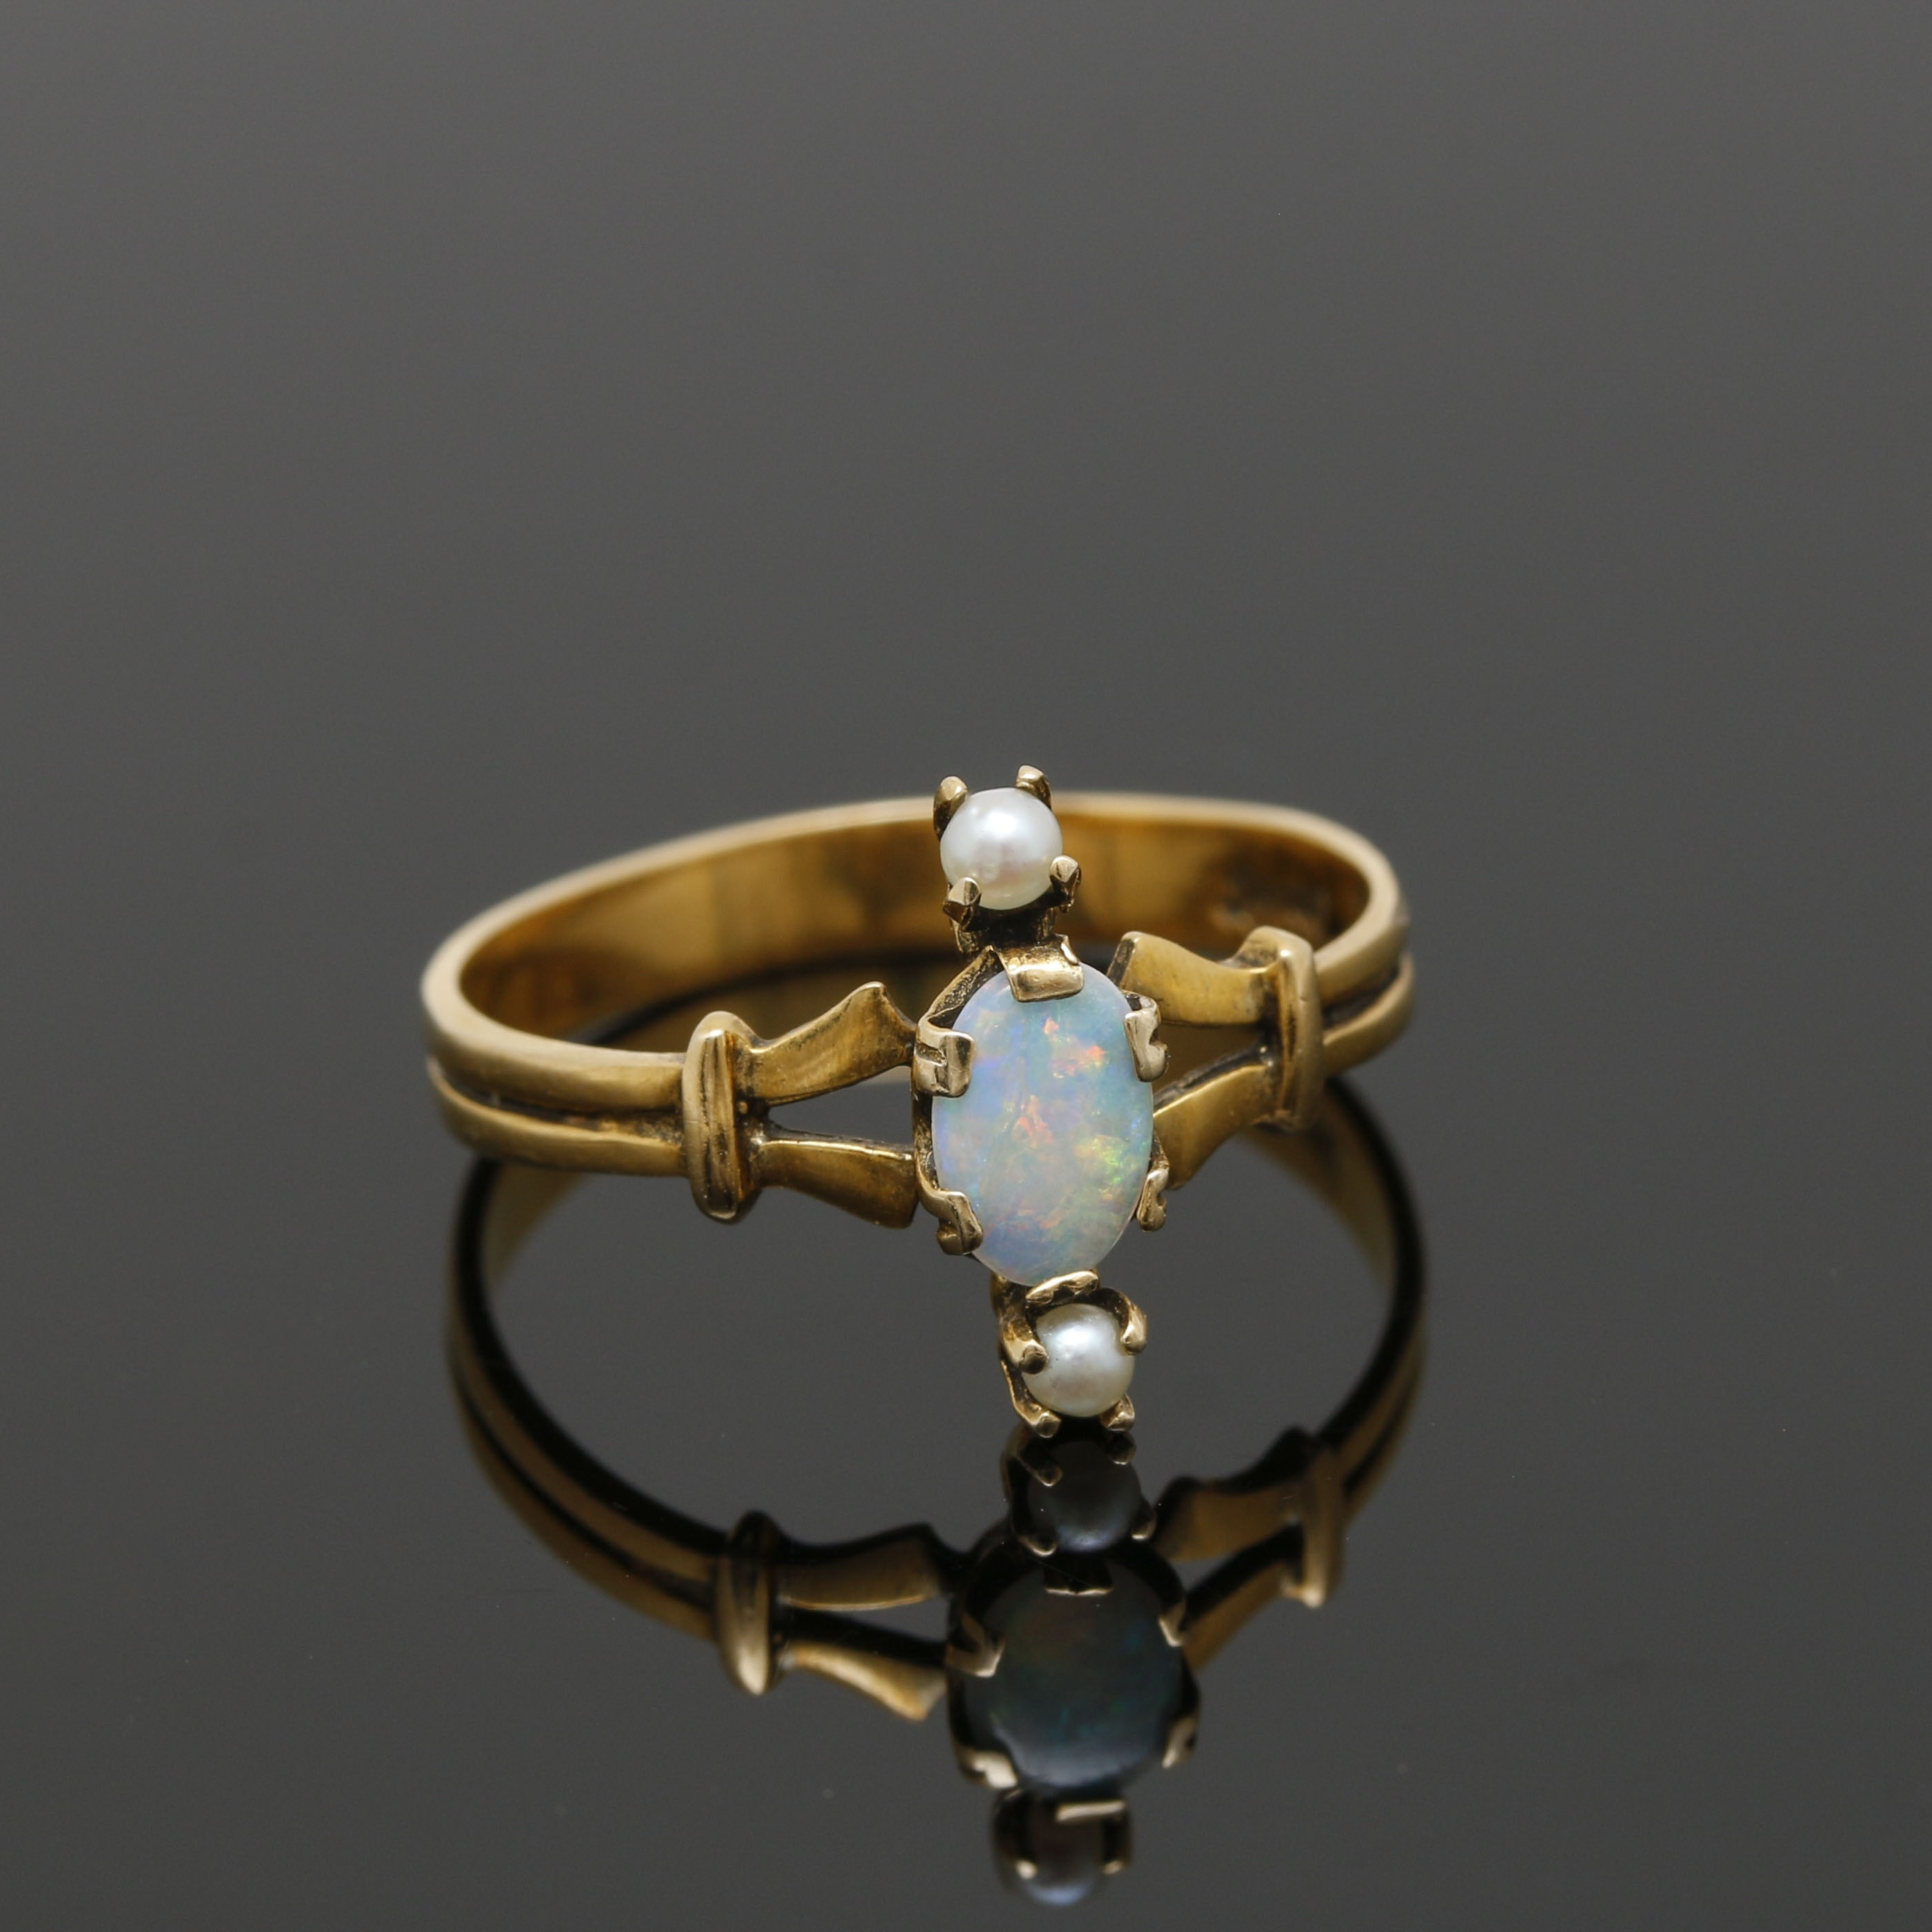 Victorian 14K Yellow Gold Opal and Seed Pearl Ring